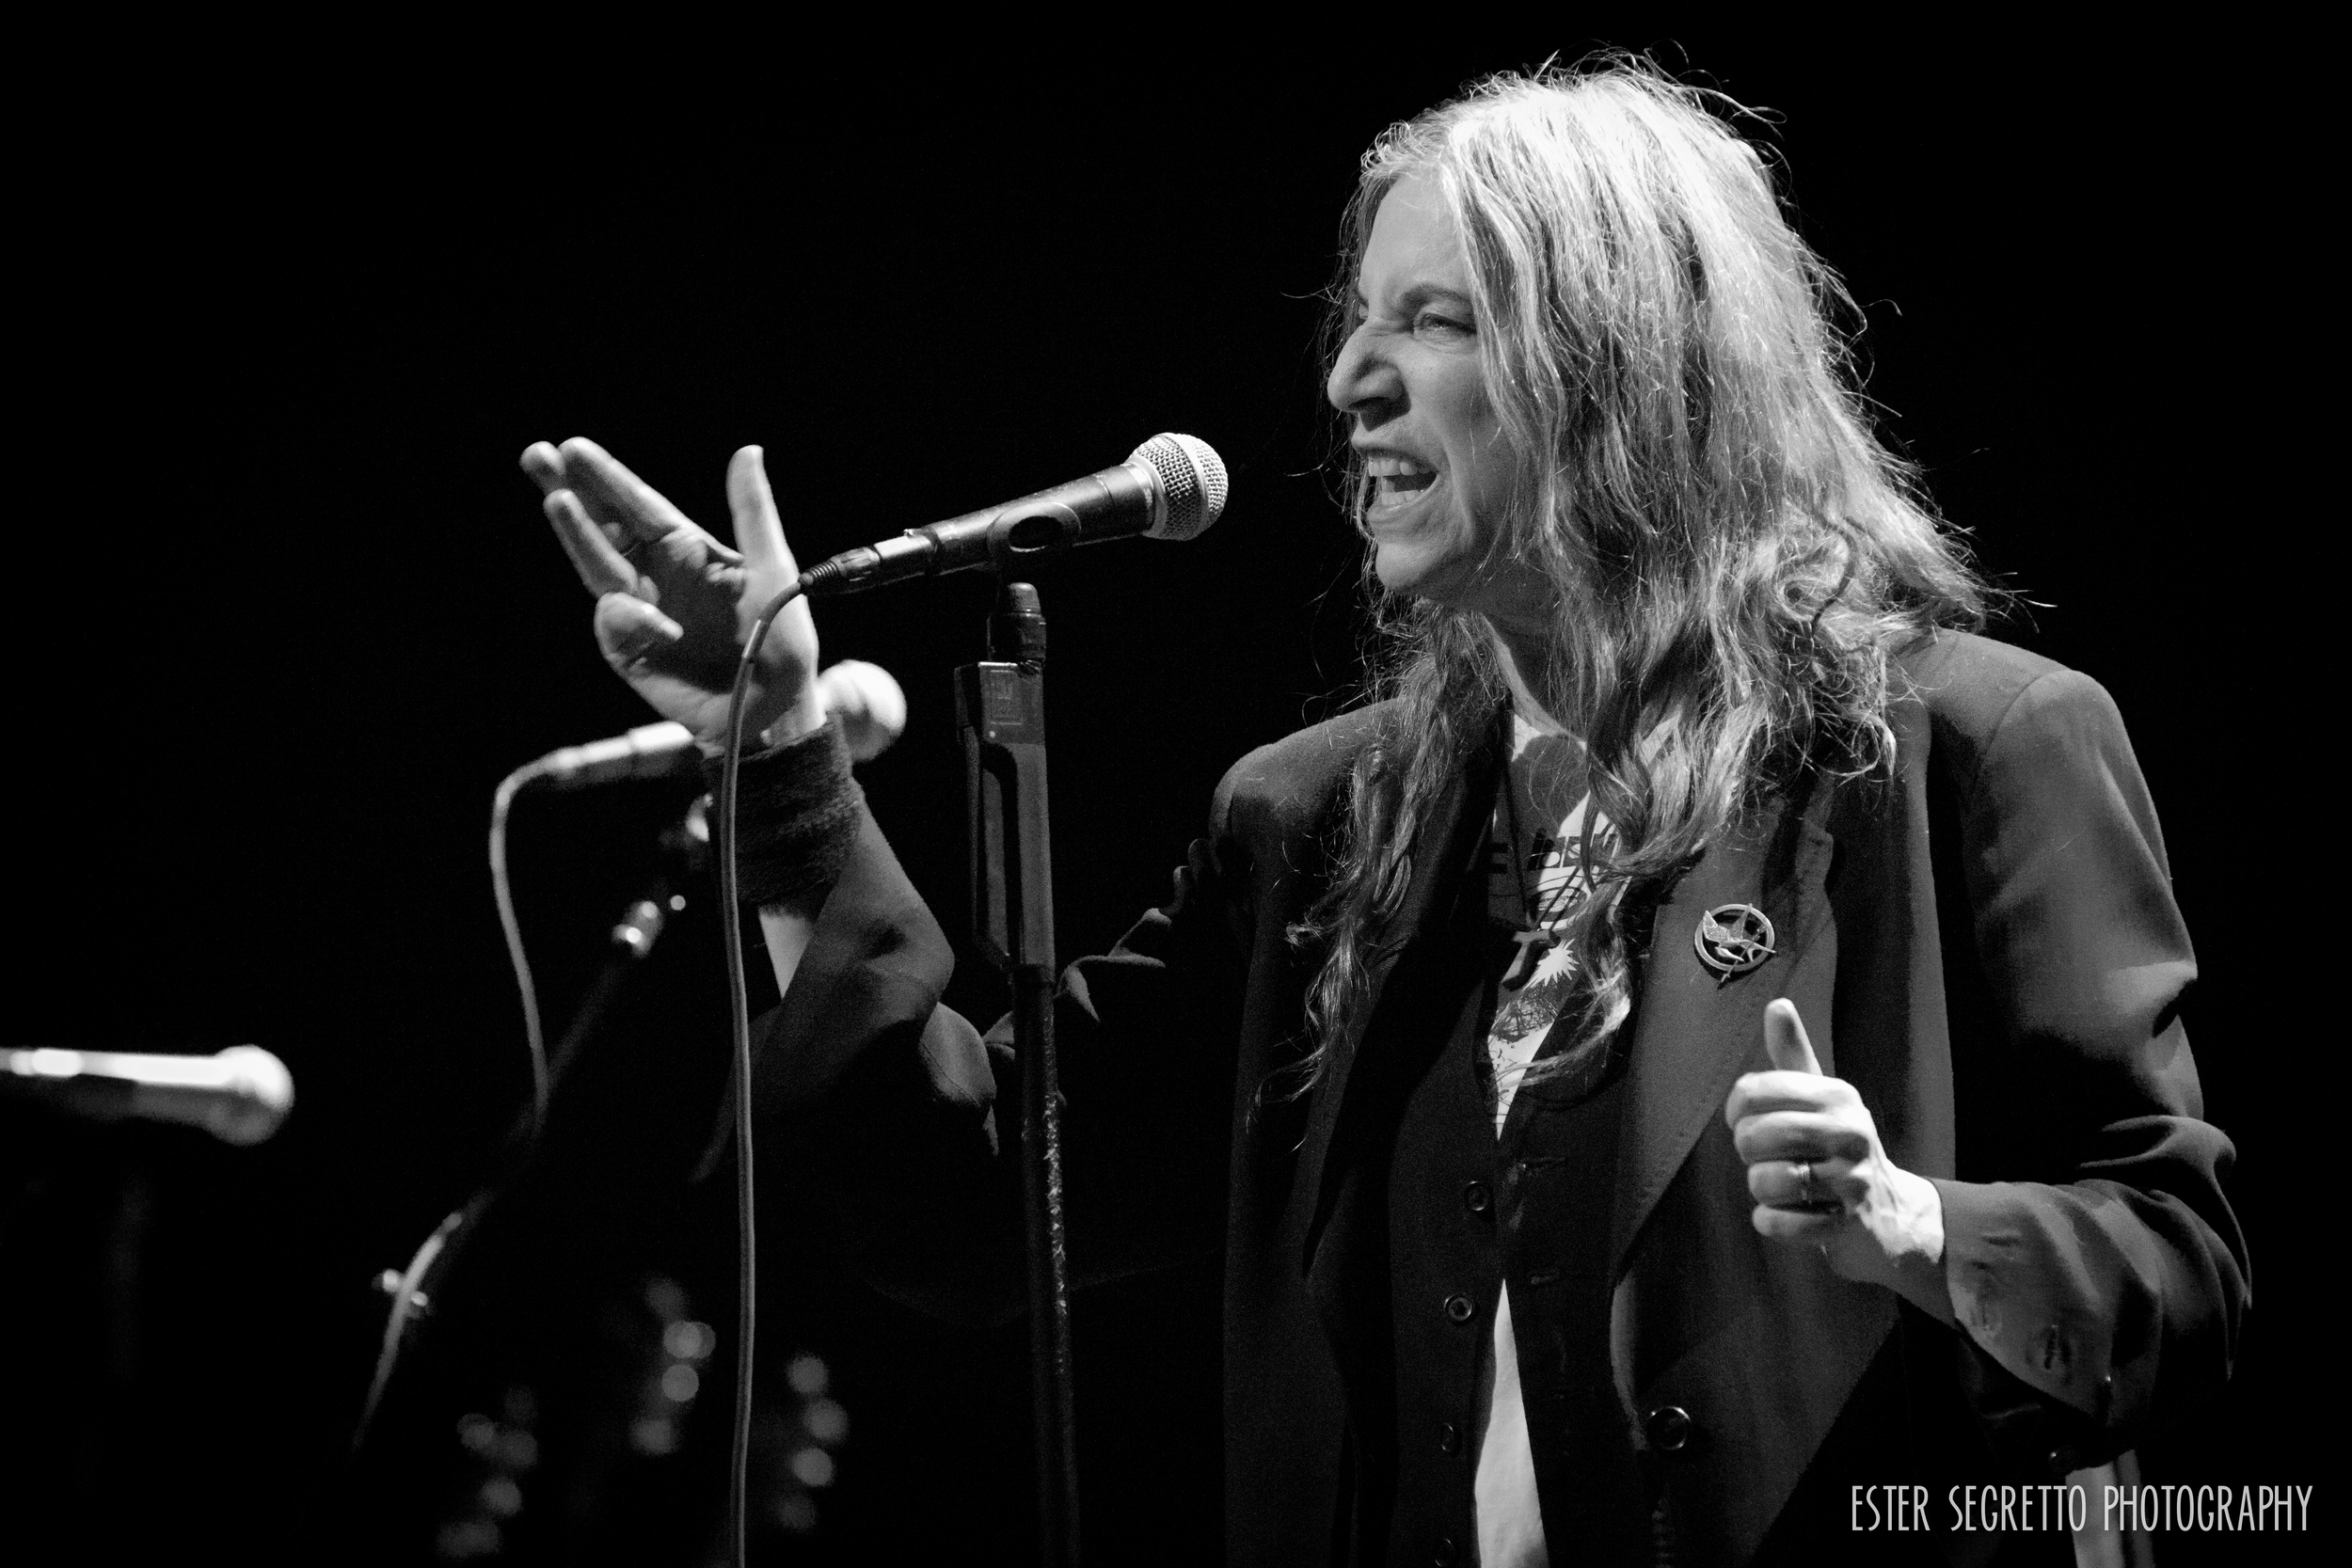 This shot is lucky for many reasons. The obvious one being, this is Patti Smith! She's one of the most respected artists of our time. She helped shape an era that is wildly influential to most artists performing today. The second reason is, I realized that I was only one of two photographers approved to shoot this show and that there were no photographers approved for her next two Webster Hall NYC shows this week. What a great way to close out another great year of shooting concerts, I feel very lucky indeed.